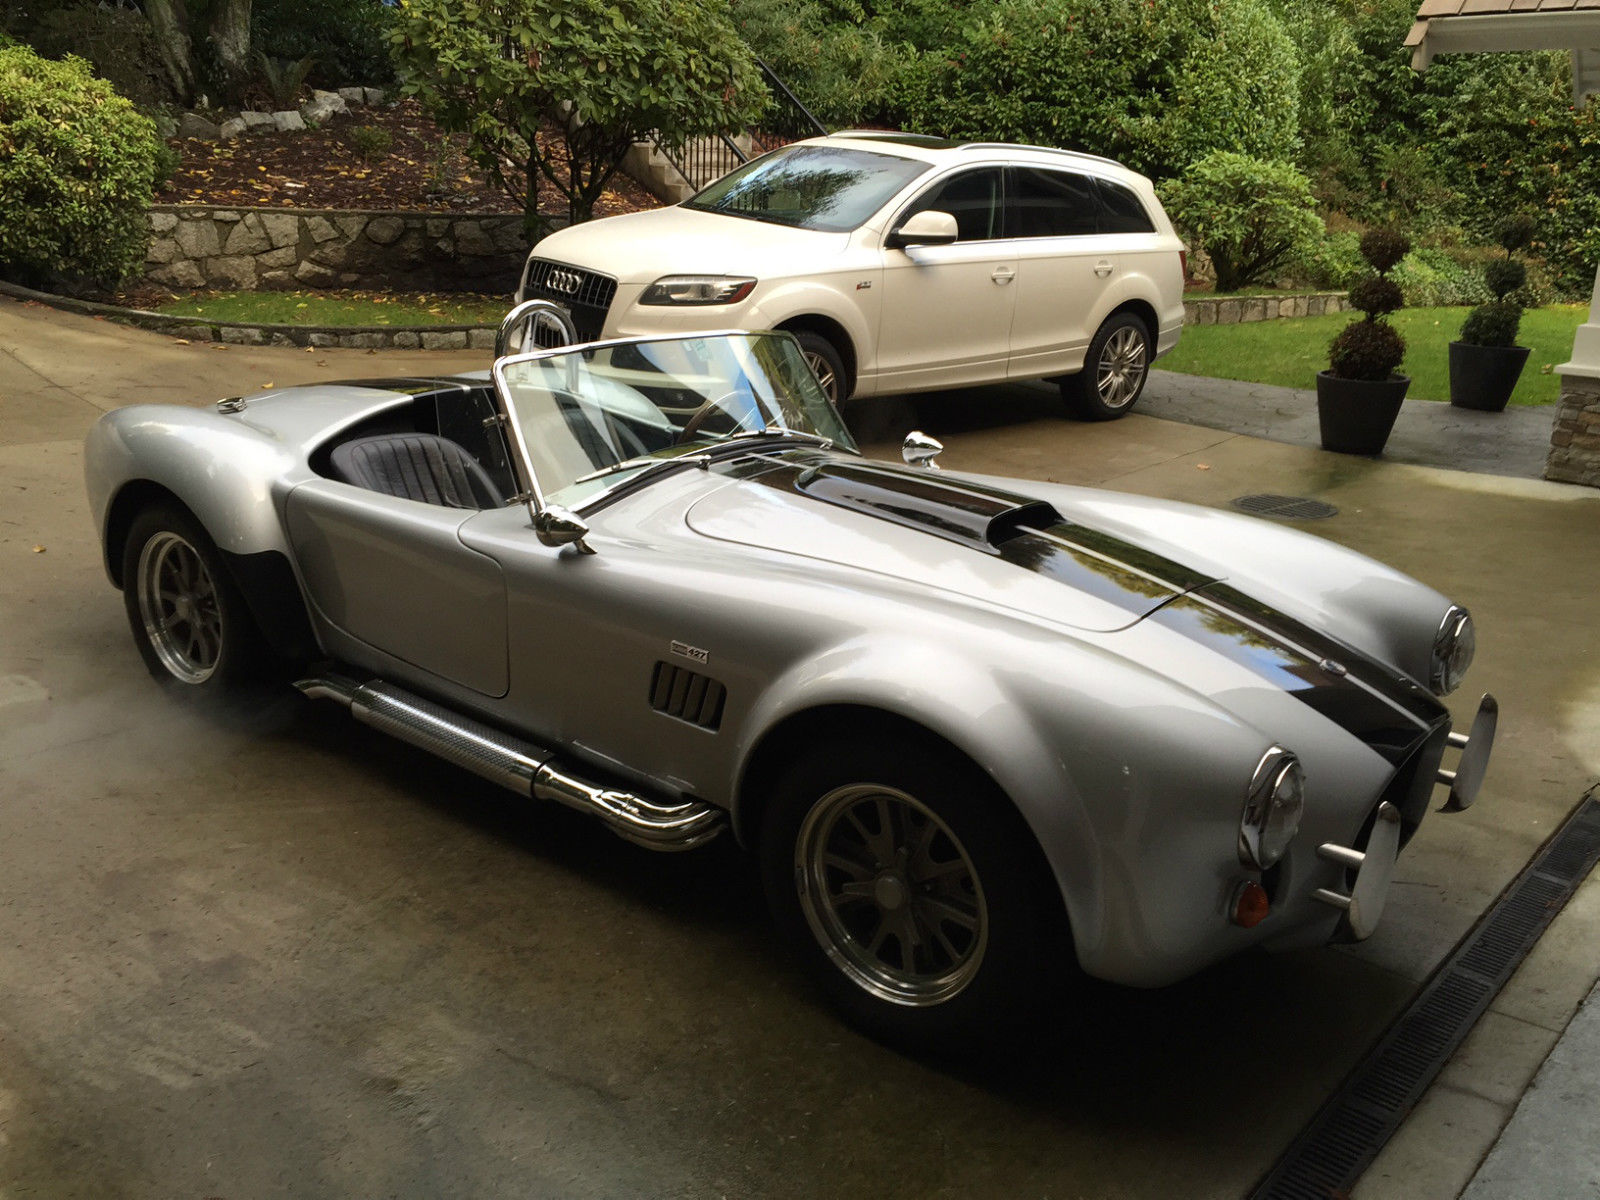 Ac Cobra 427 Professionally Built Kit Car By Classic Roadsters